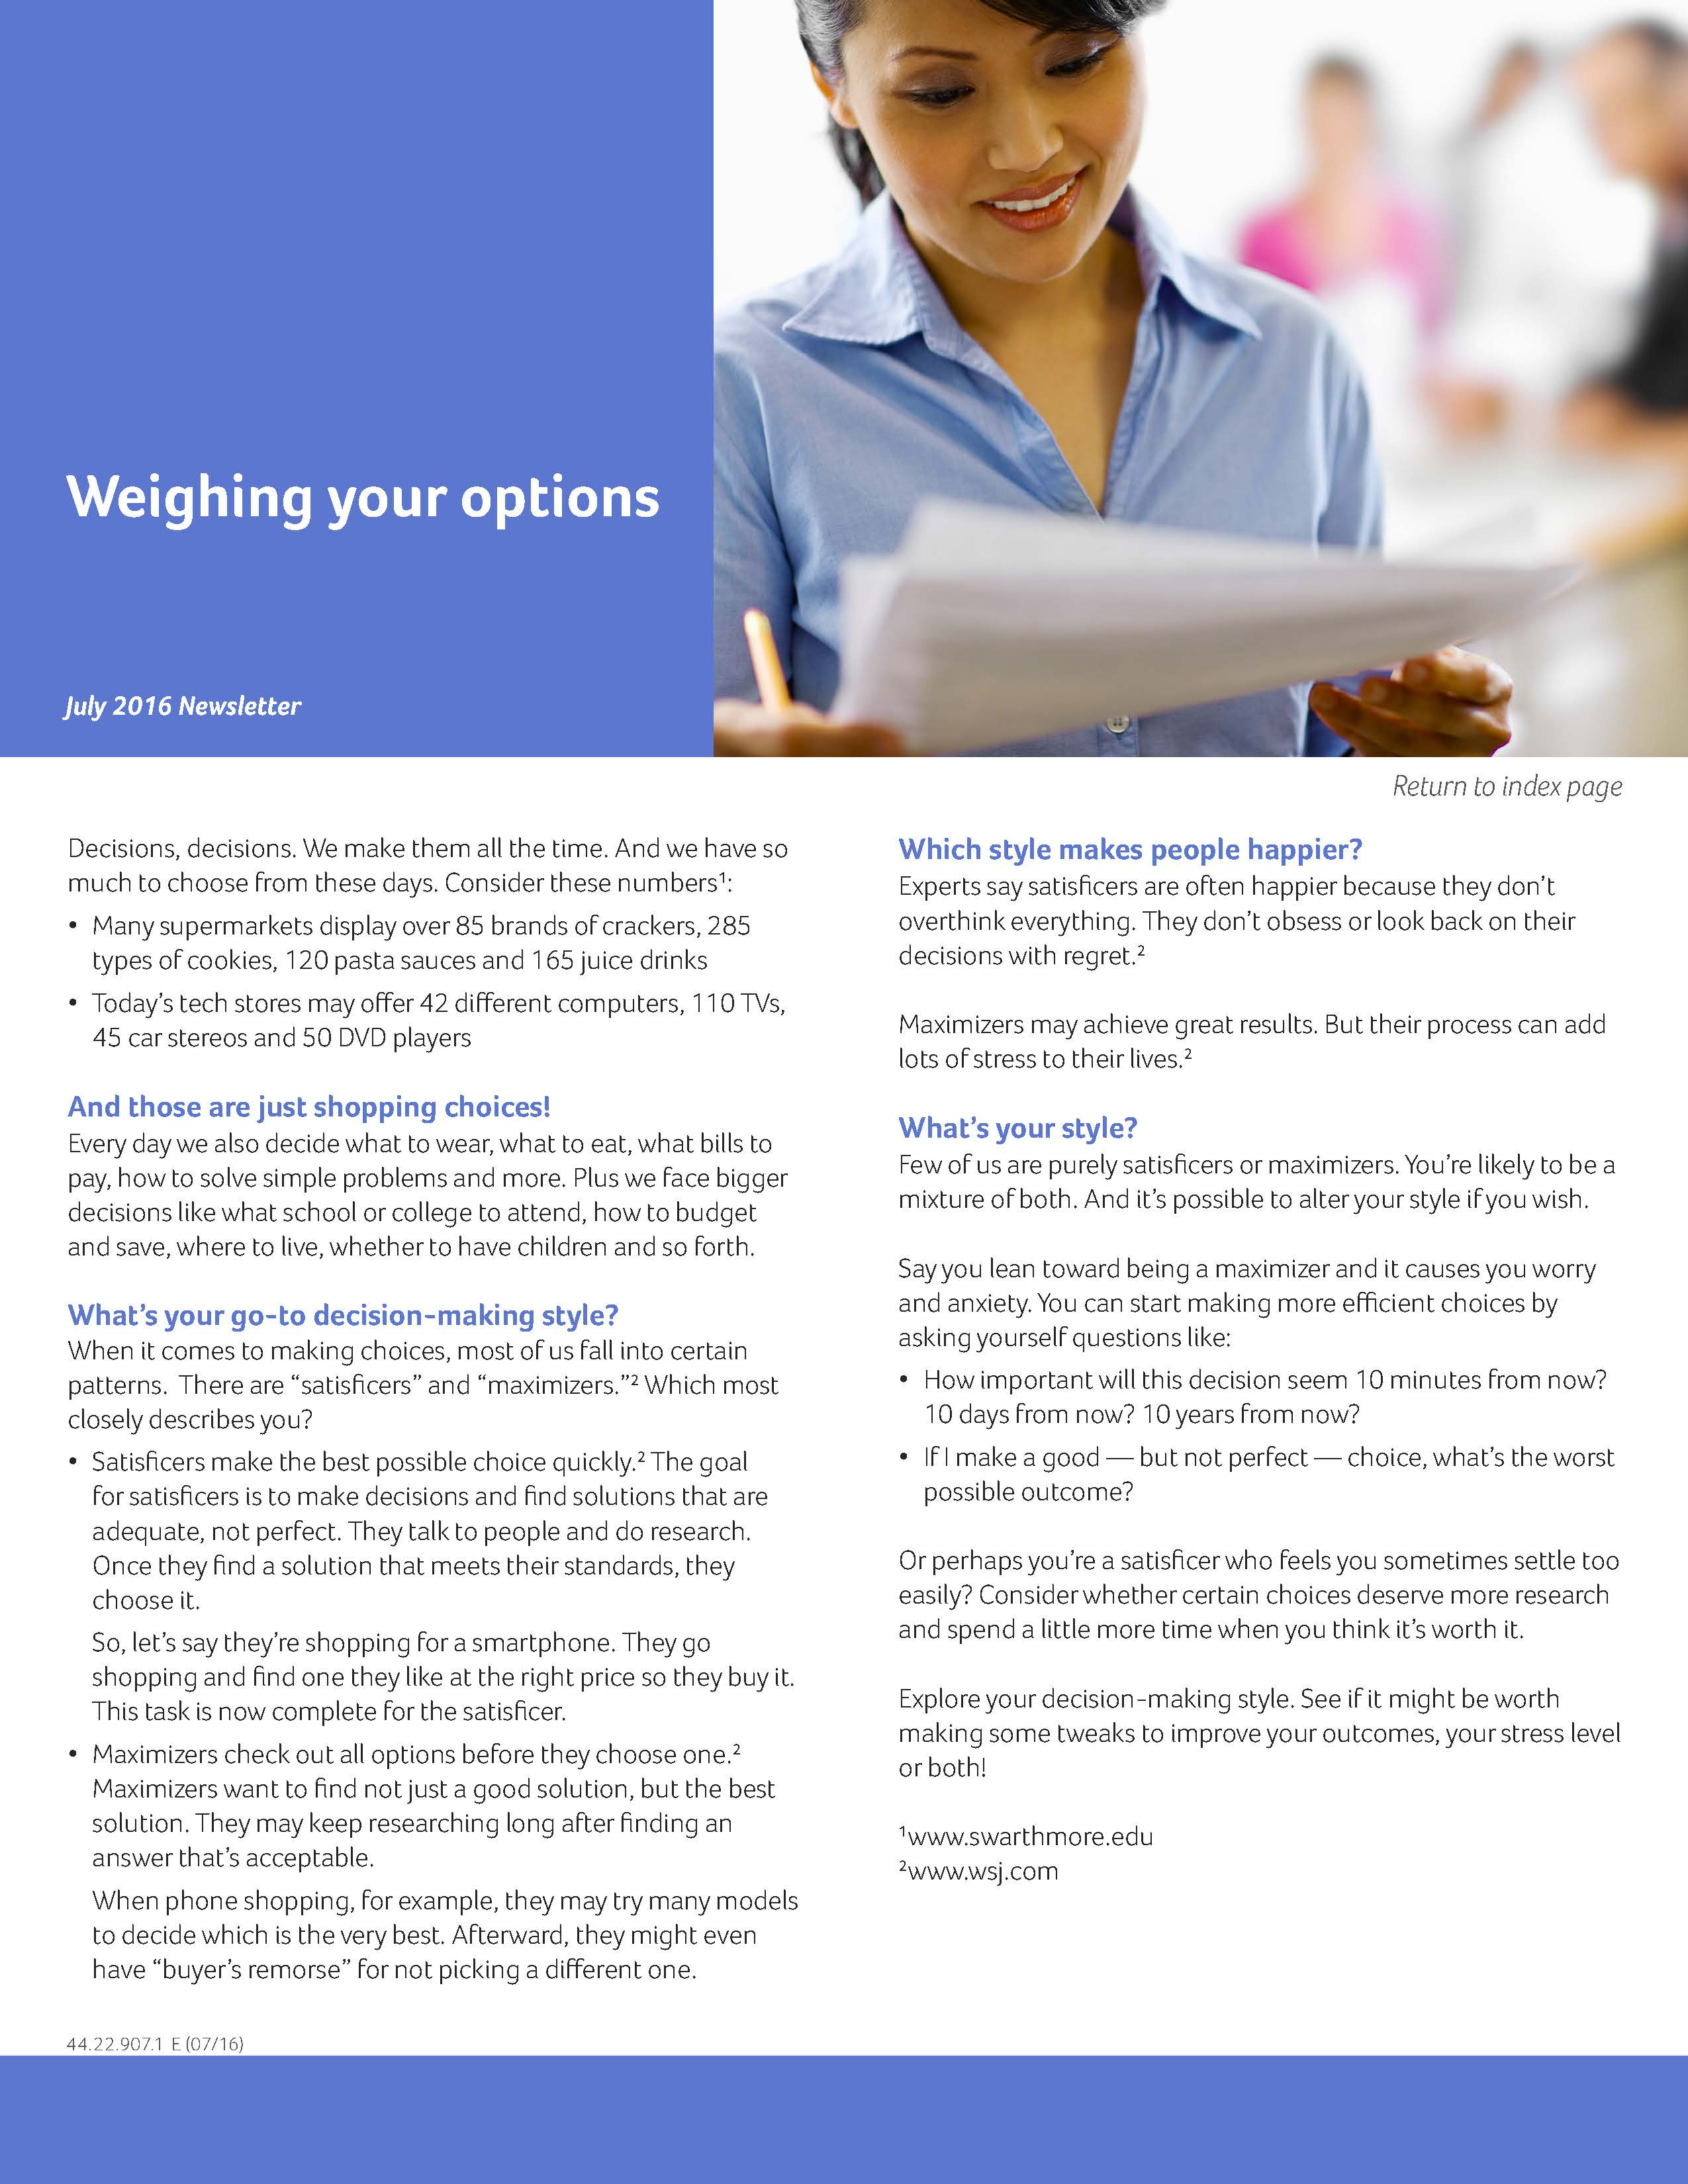 Jul16_MonthlyBulletin_Weighing your options